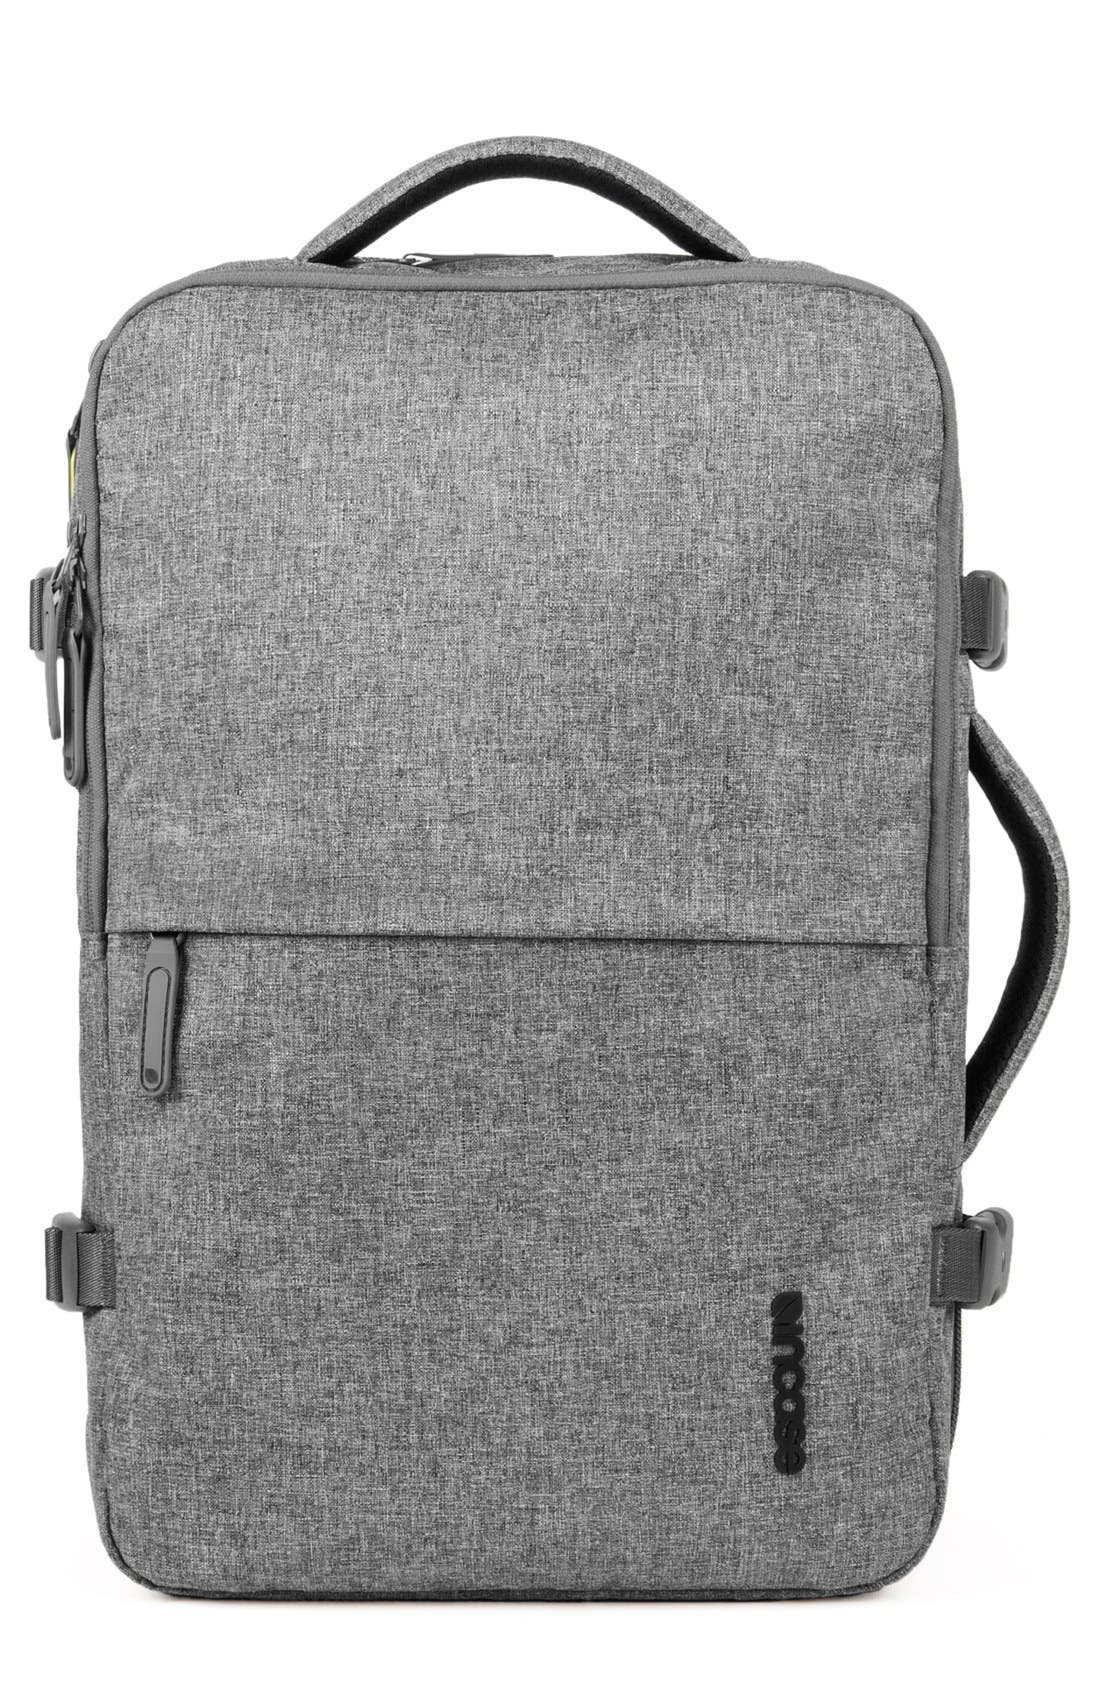 Main Image - Incase Designs EO Travel Backpack